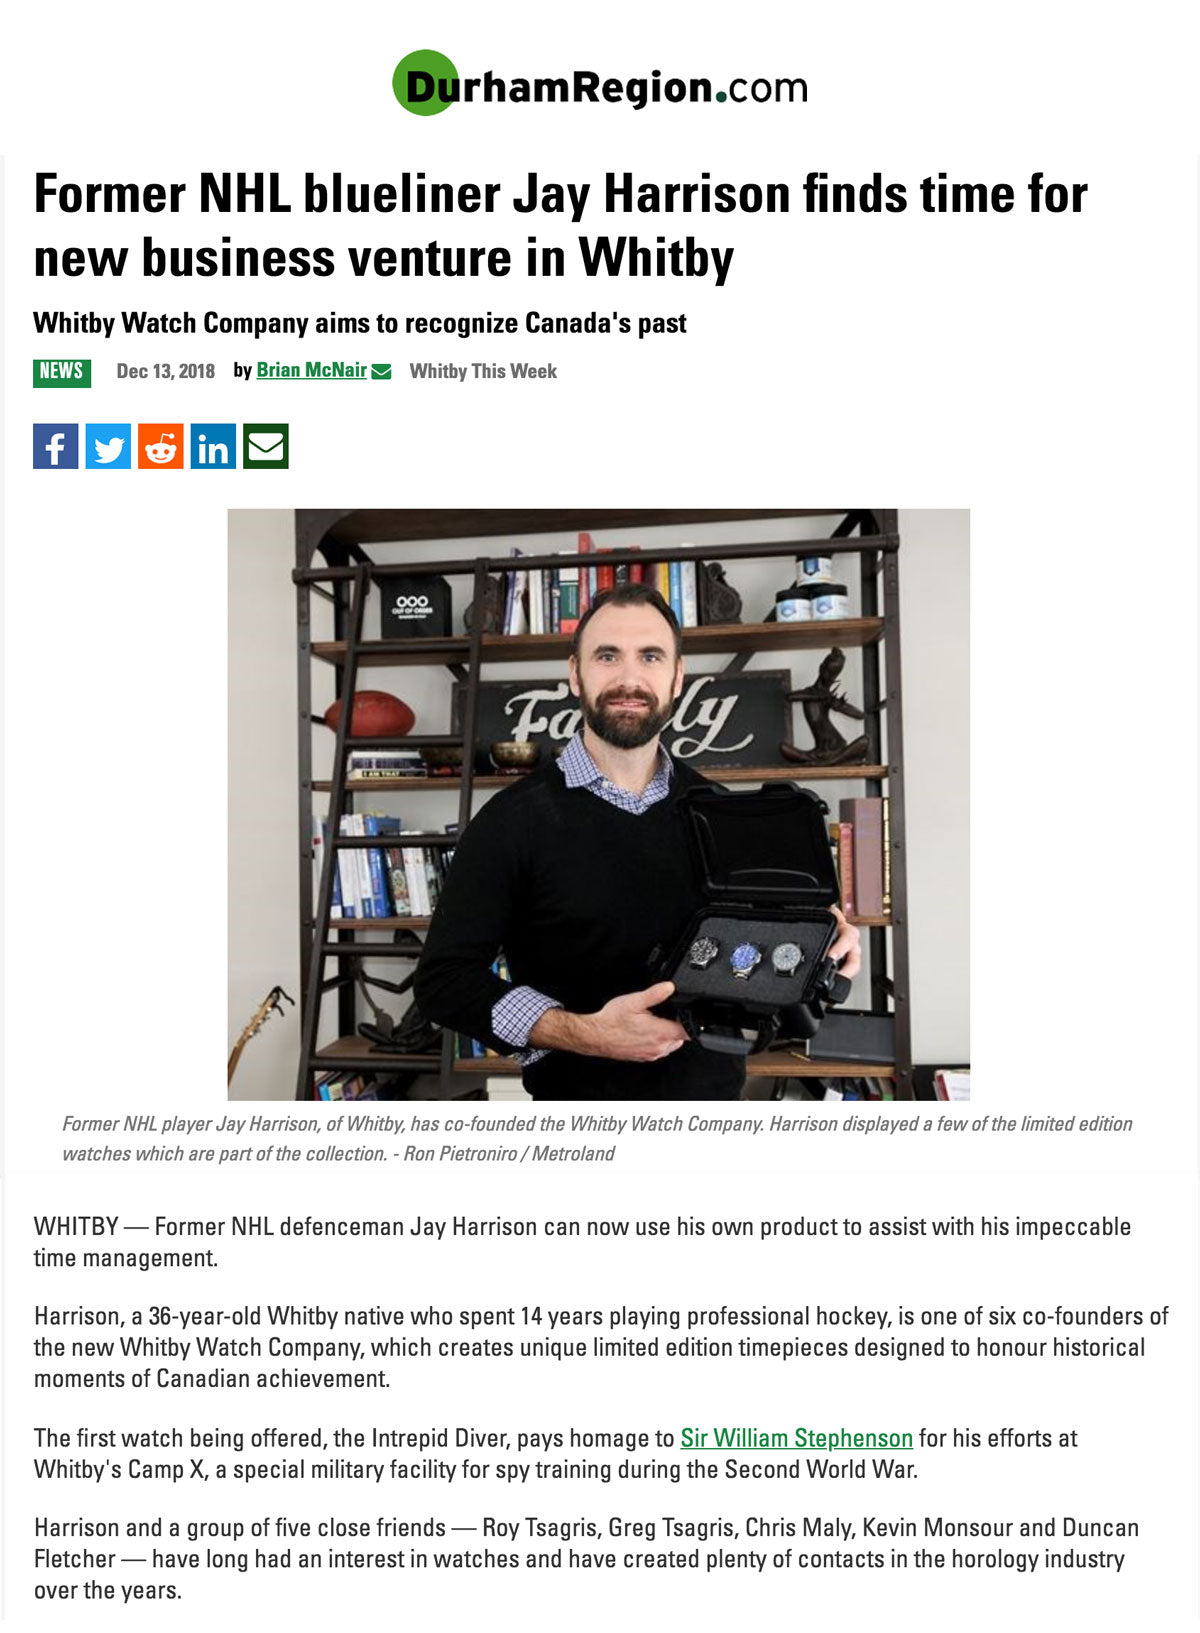 WHITBY — Former NHL defenceman Jay Harrison can now use his own product to assist with his impeccable time management.  Harrison, a 36-year-old Whitby native who spent 14 years playing professional hockey, is one of six co-founders of the new Whitby Watch Company, which creates unique limited edition timepieces designed to honour historical moments of Canadian achievement.  The first watch being offered, the Intrepid Diver, pays homage to Sir William Stephenson for his efforts at Whitby's Camp X, a special military facility for spy training during the Second World War.  Harrison and a group of five close friends — Roy Tsagris, Greg Tsagris, Chris Maly, Kevin Monsour and Duncan Fletcher — have long had an interest in watches and have created plenty of contacts in the horology industry over the years. Intrepid Diver Luxury Watch, Camp X Watch